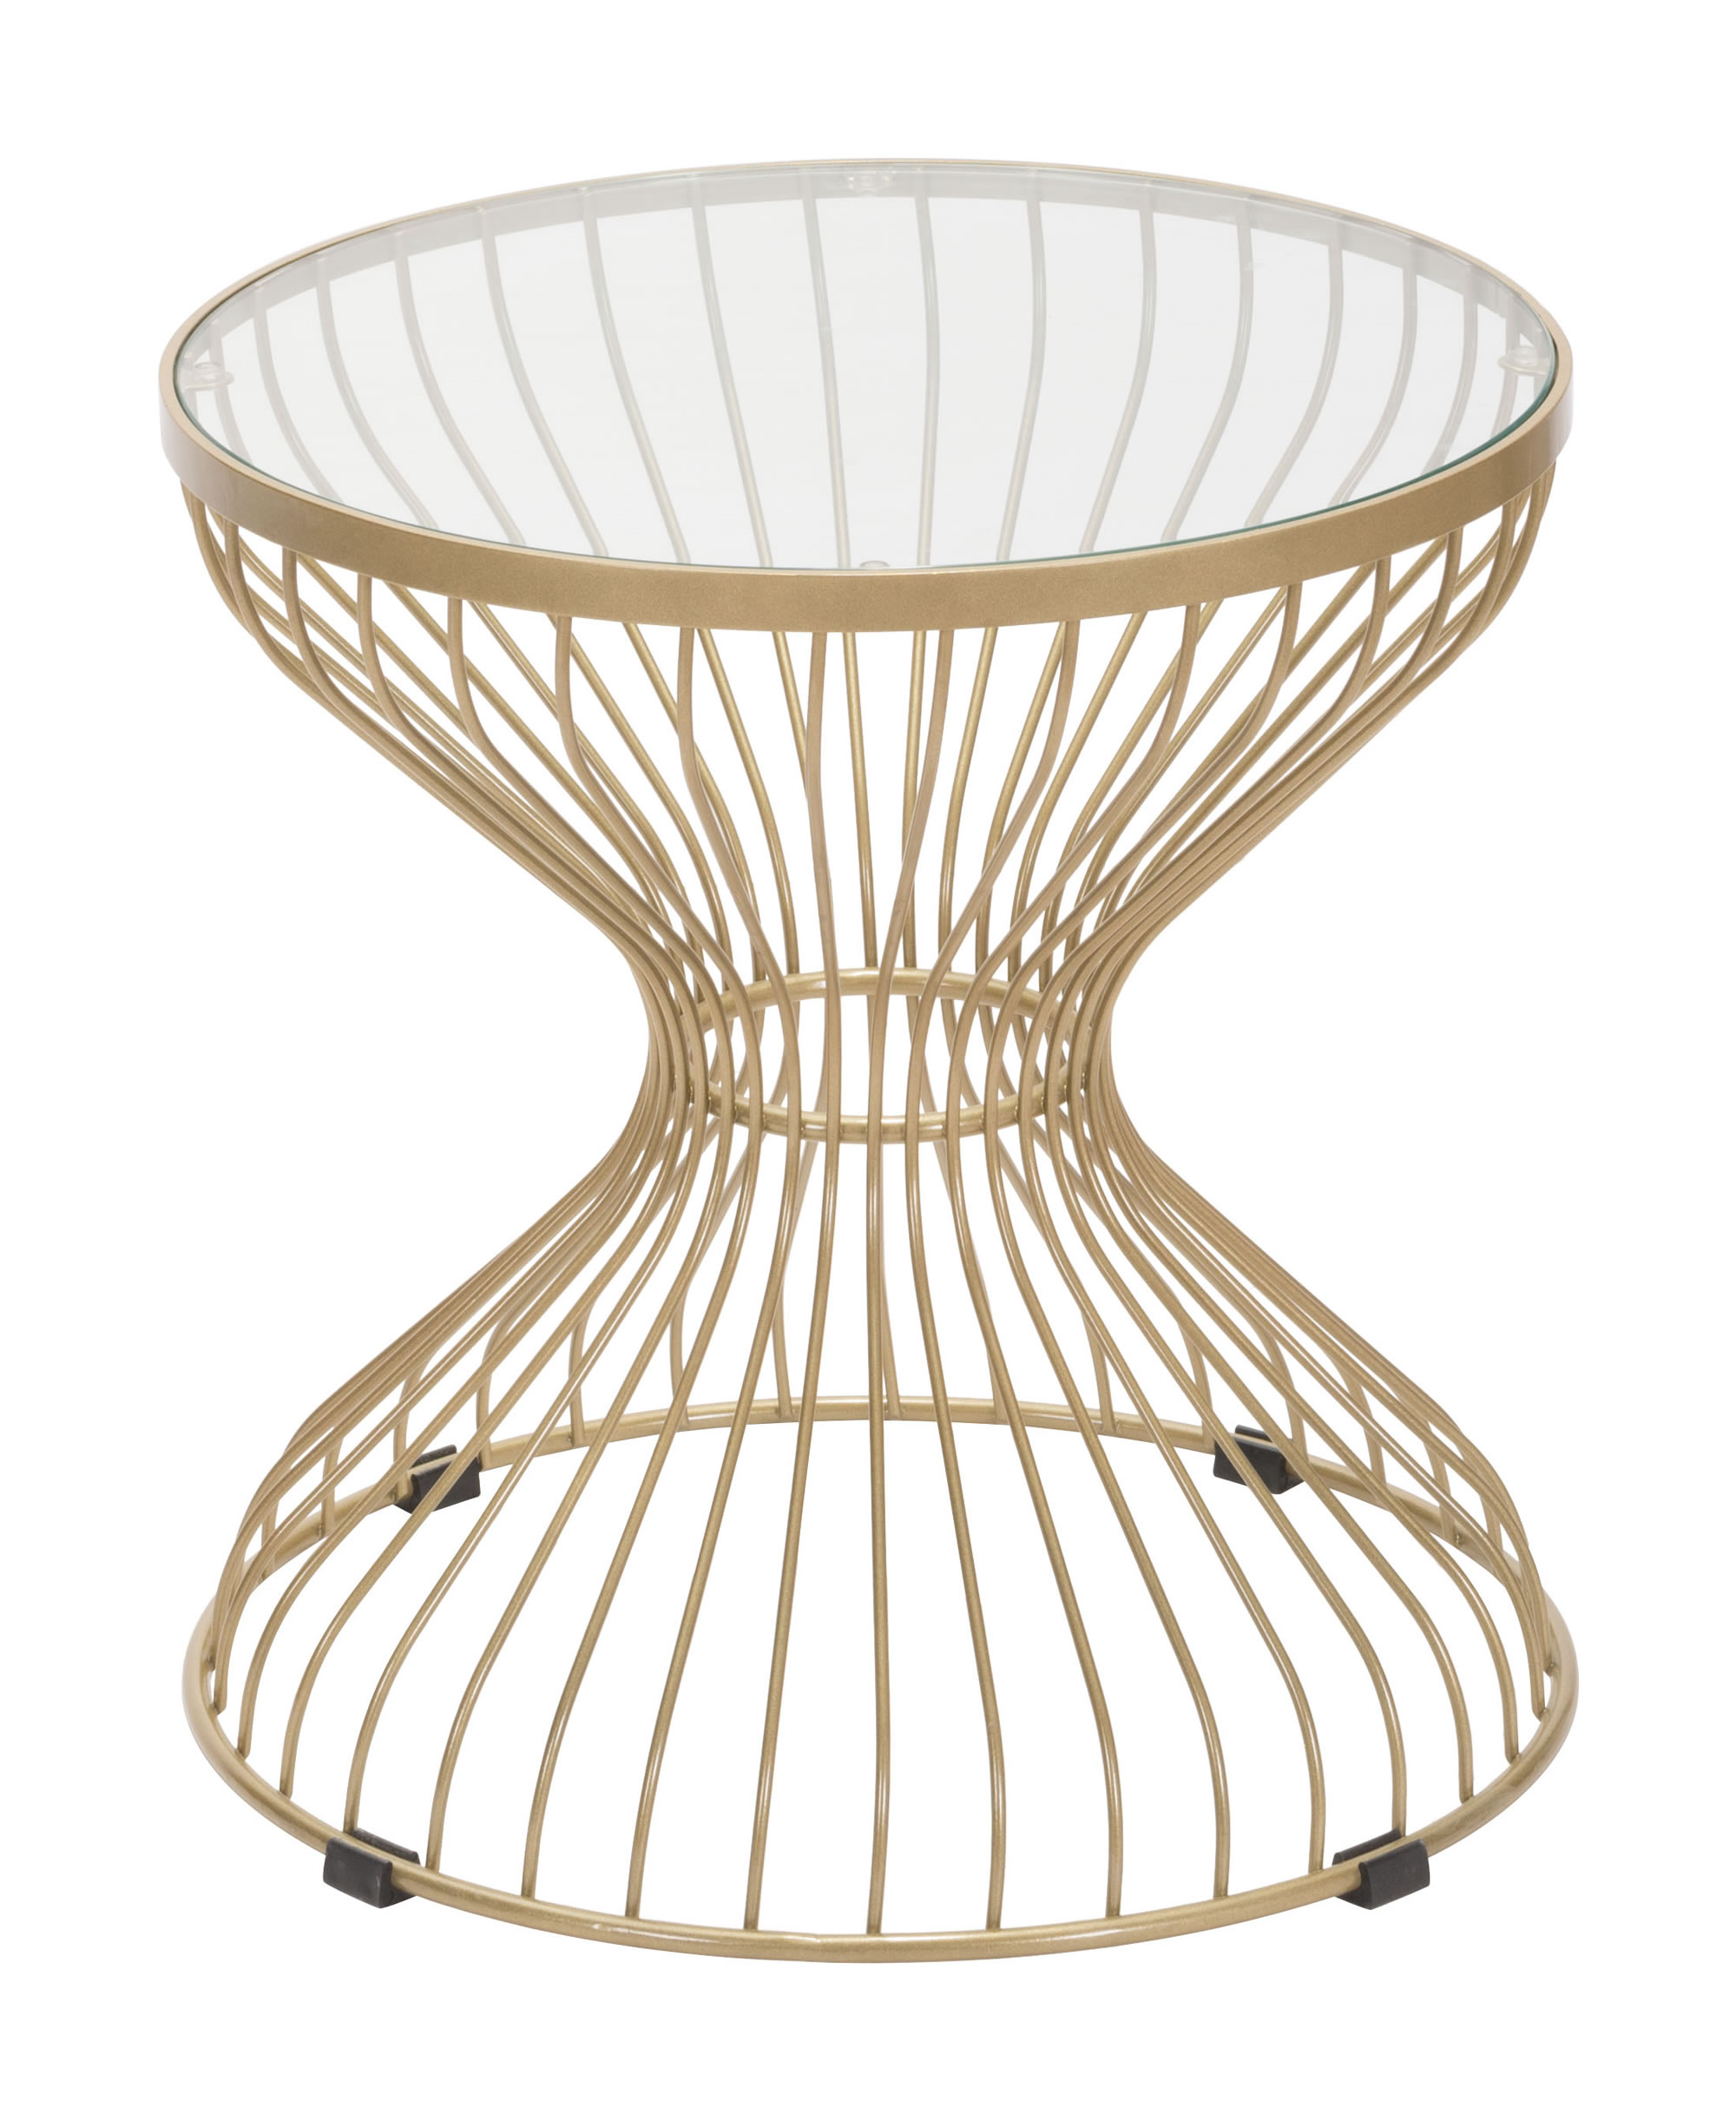 """19.7"""" x 19.7"""" x 19.7"""" Gold, Tempered Glass, Steel, Side Table"""